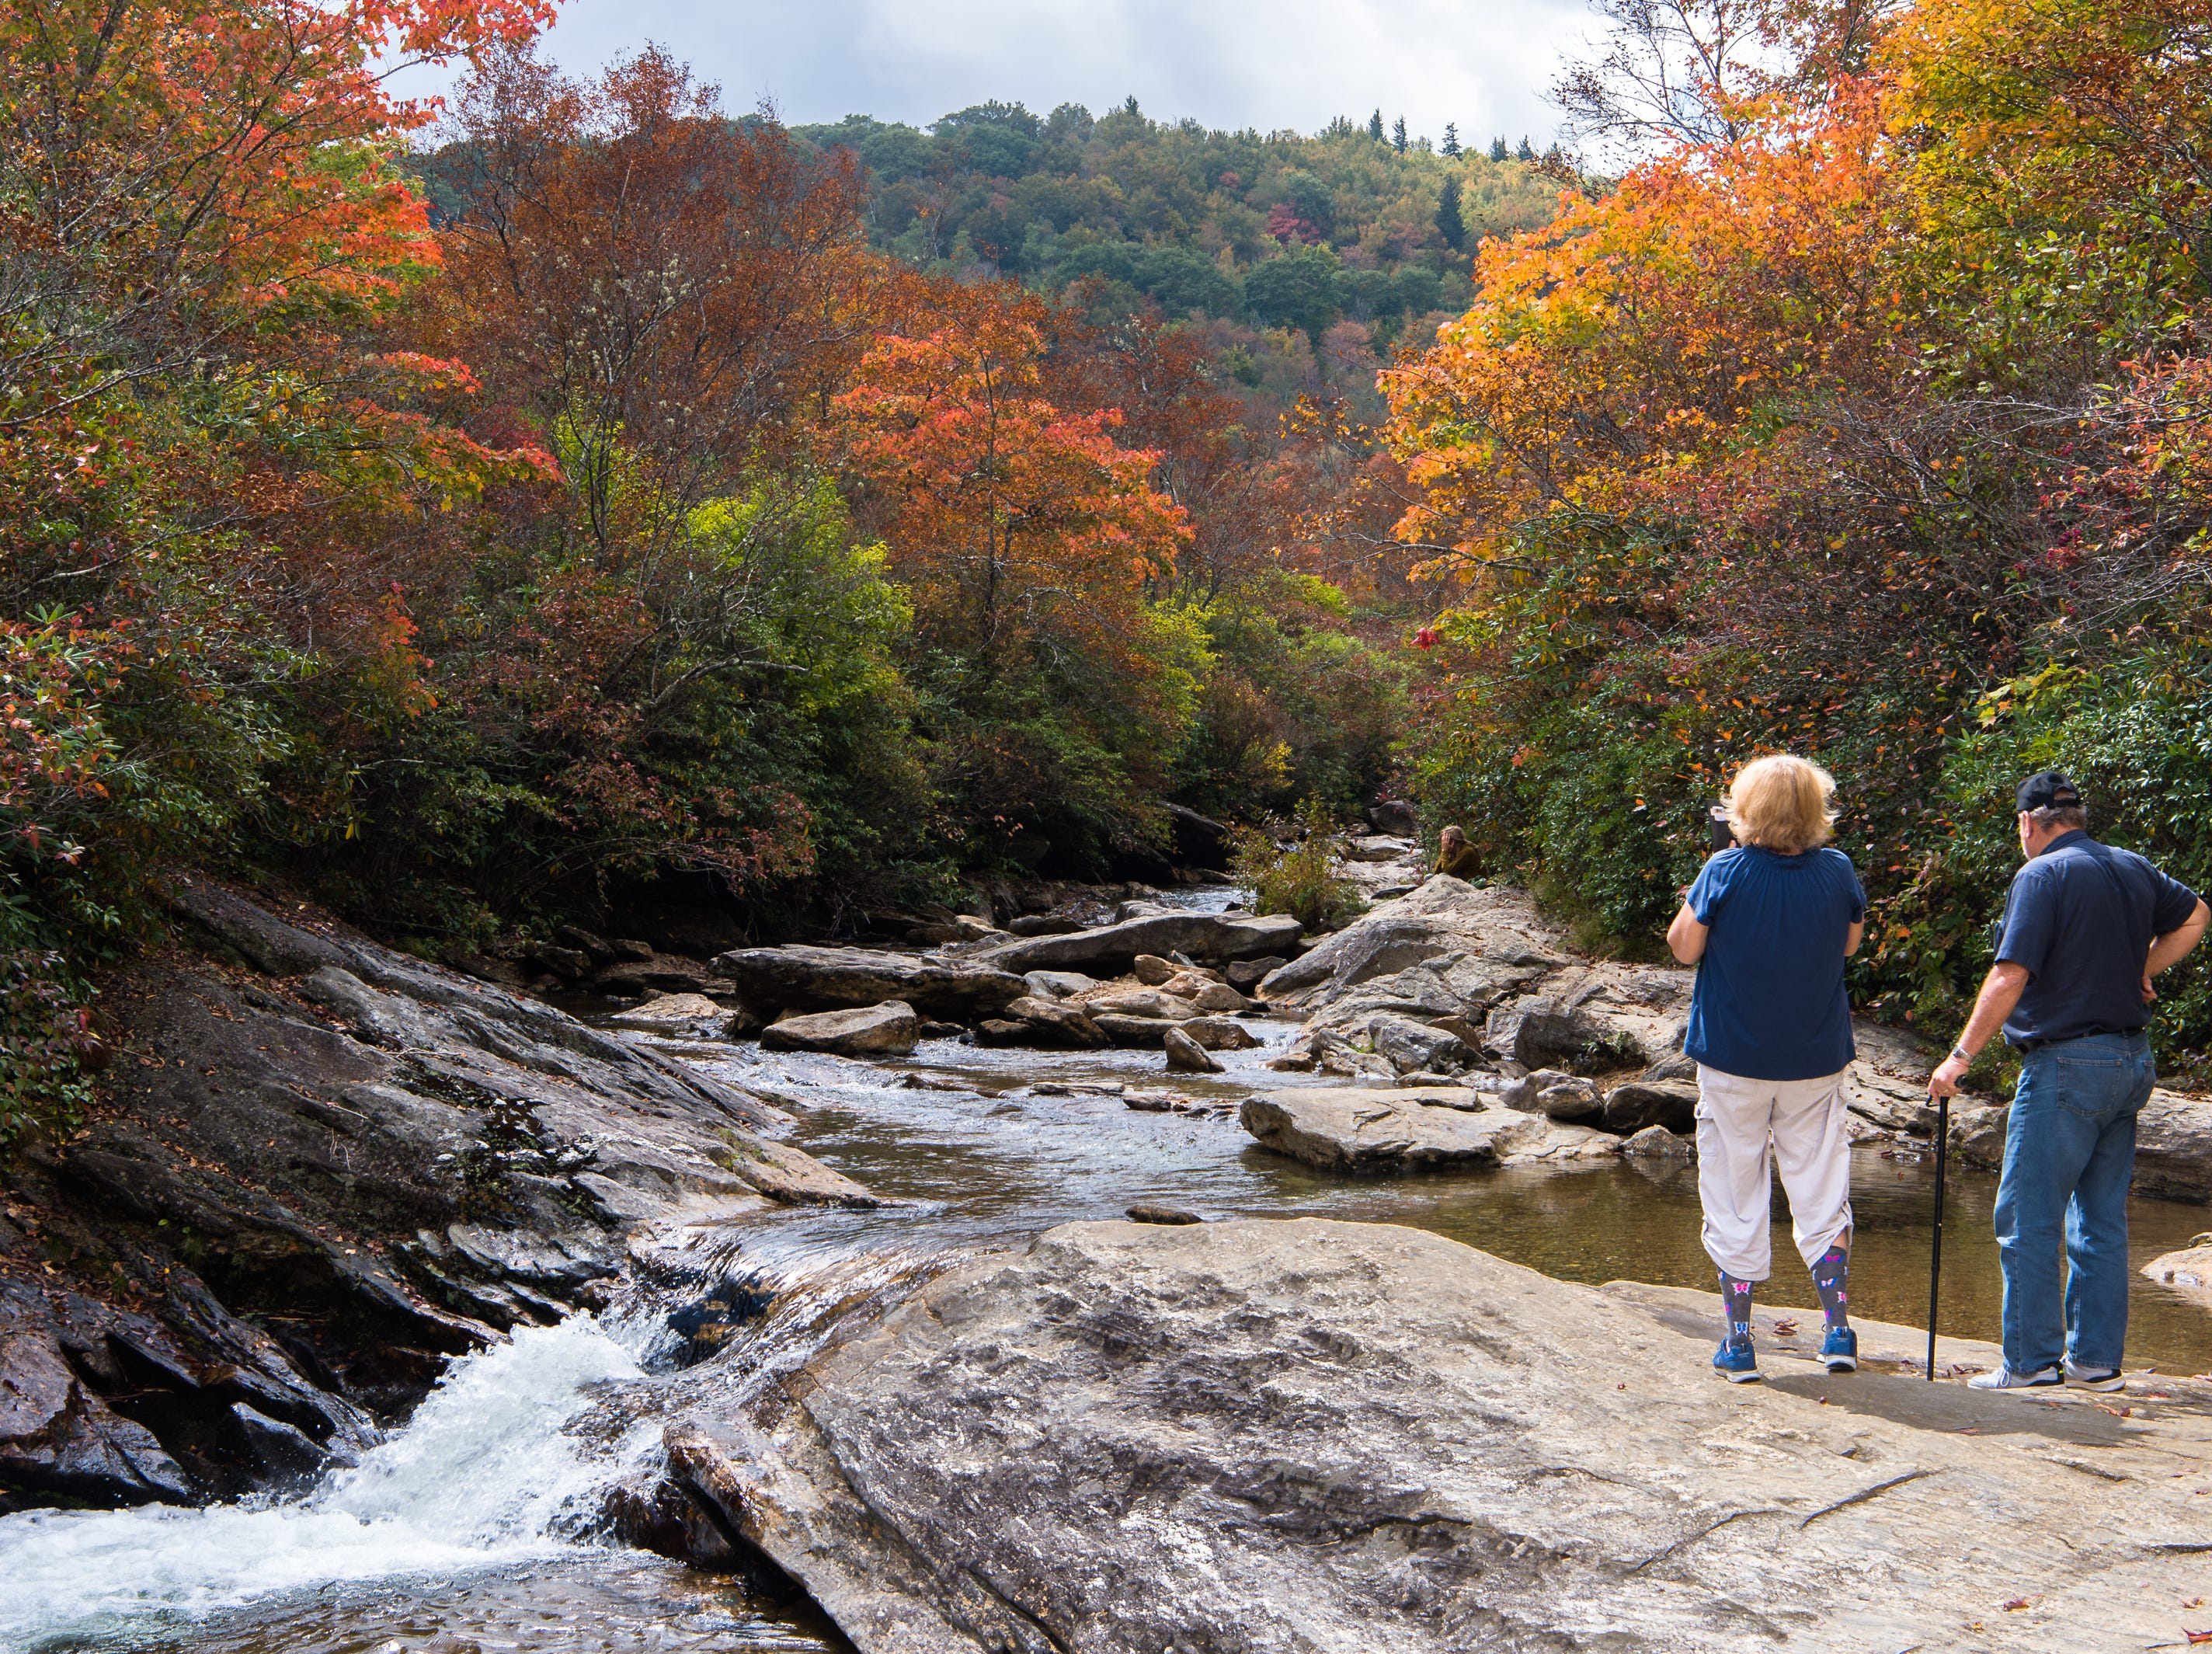 Cathy Cartica and her husband Mike Cartica, of Young Harris Georgia, take in the view at the lower falls at Graveyard Fields on the Blue Ridge Parkway, Wednesday, September 20, 2017.